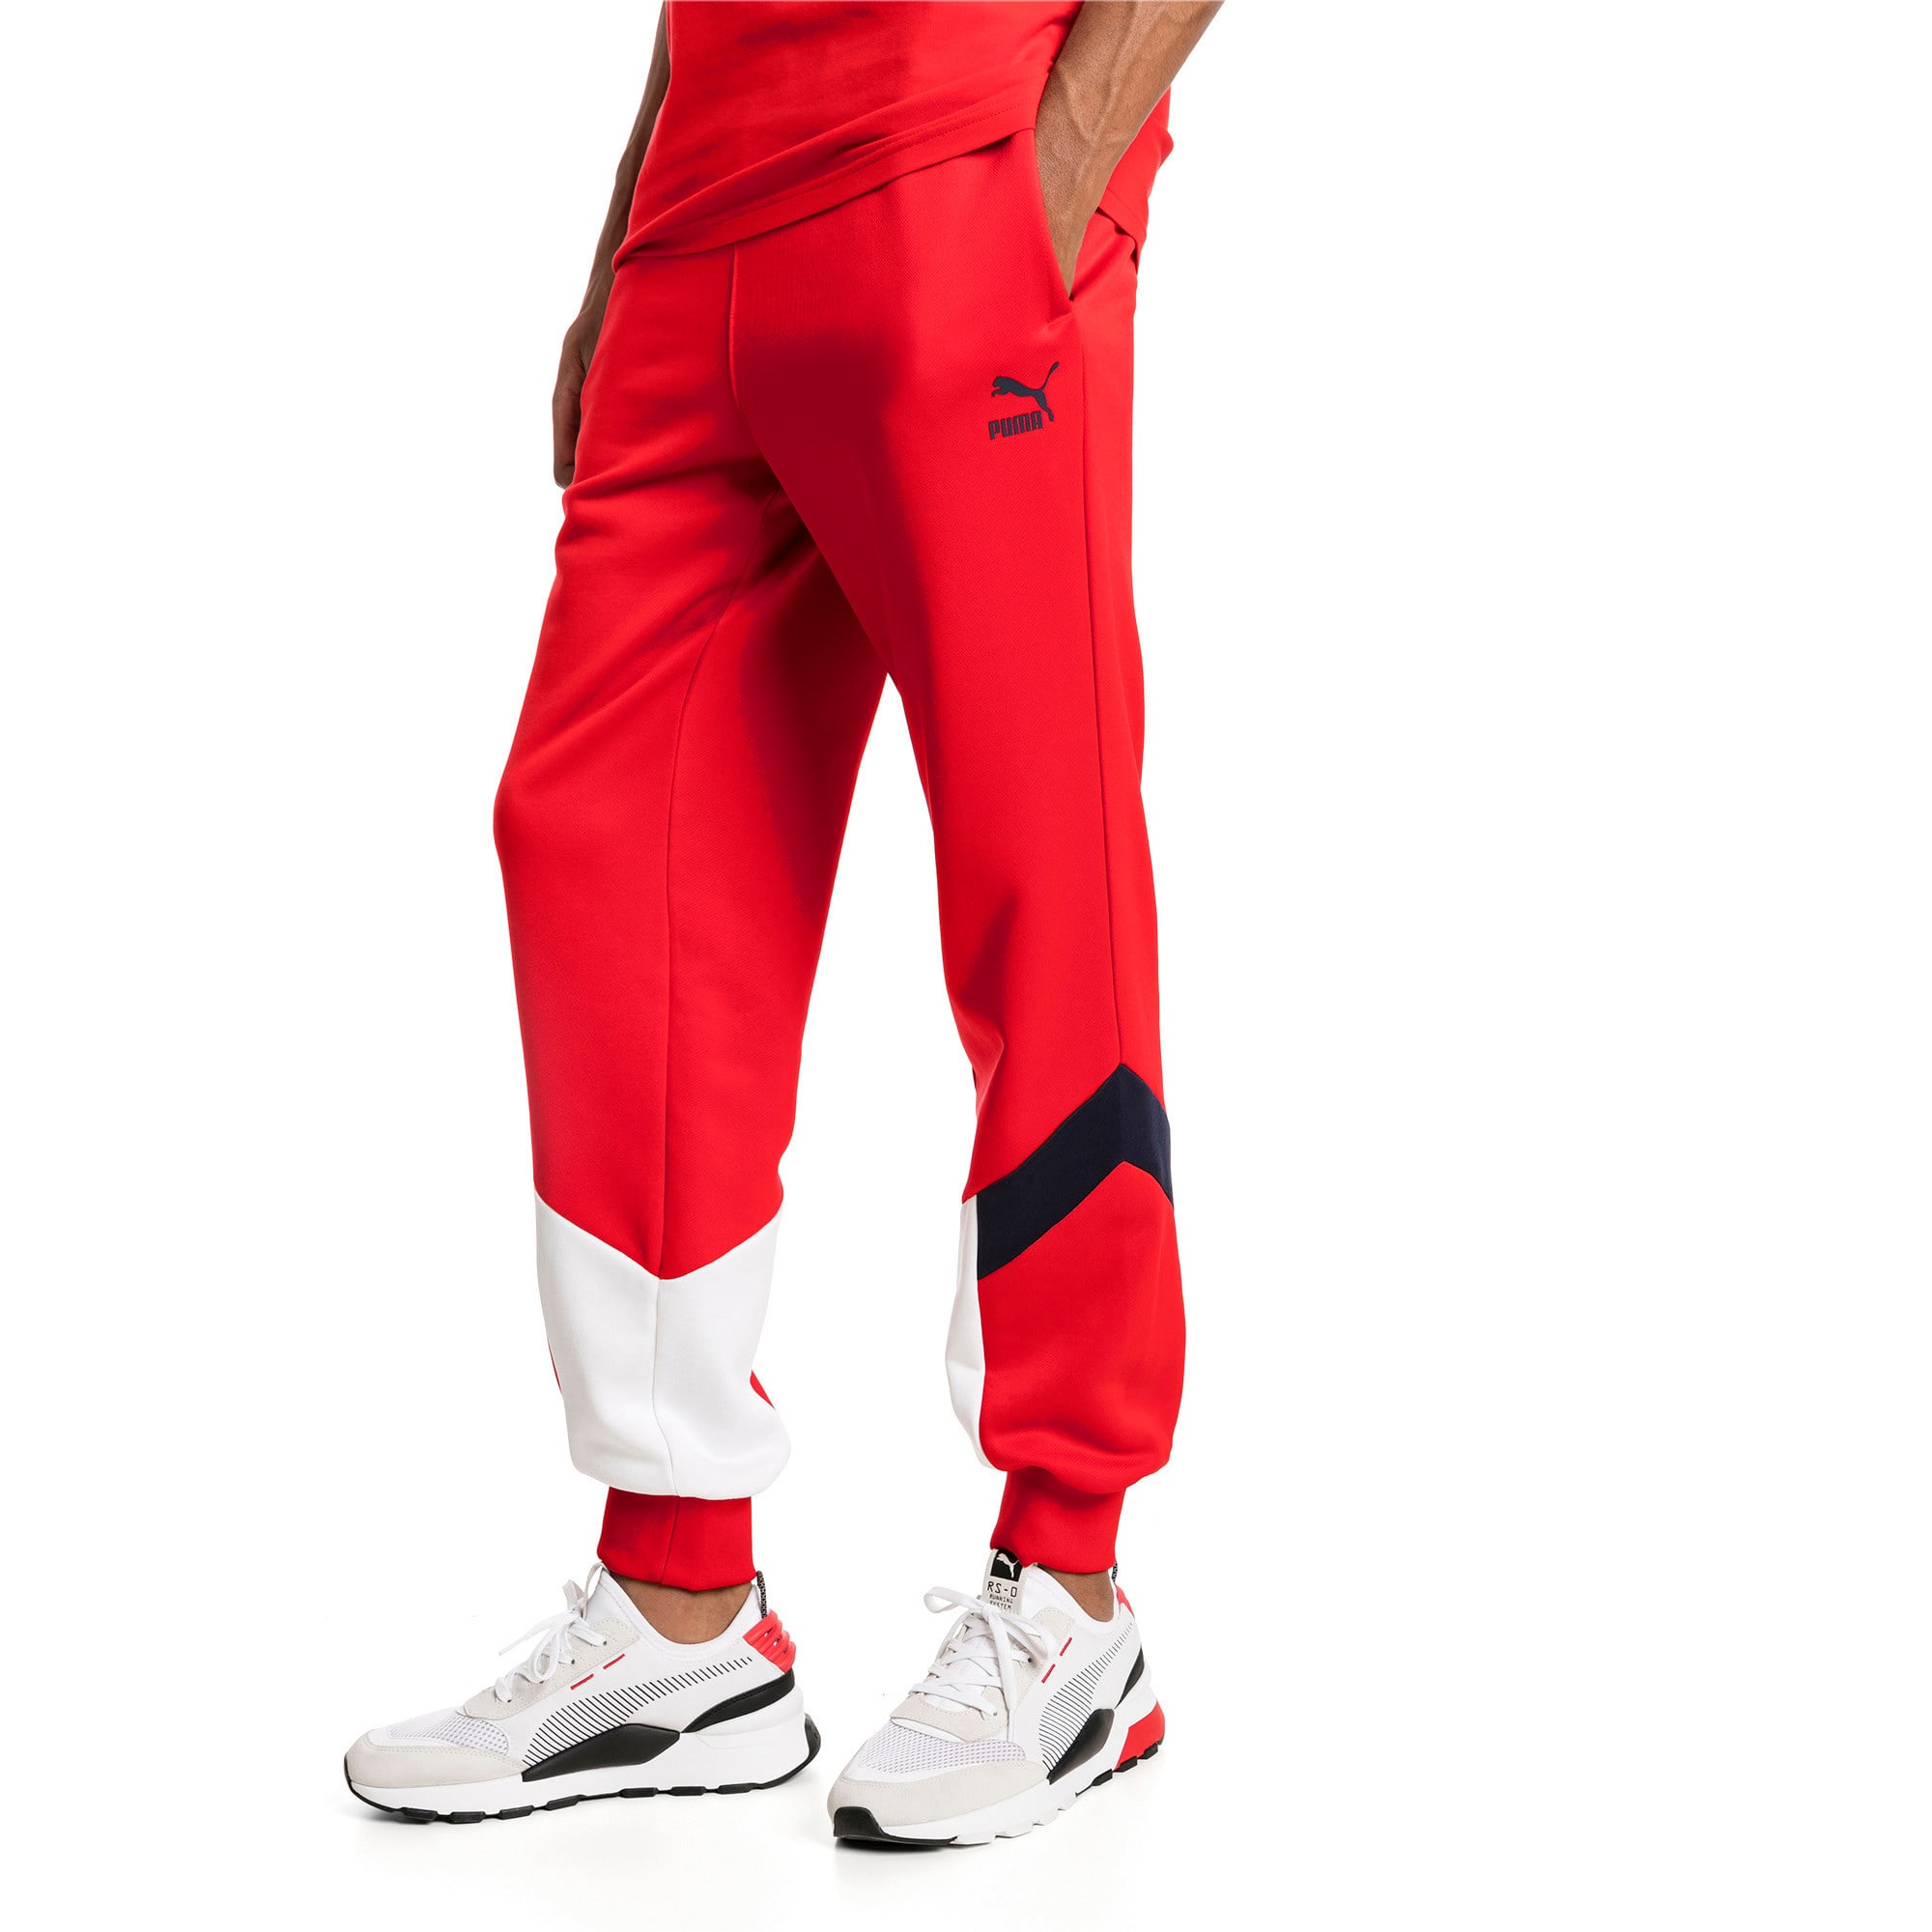 Thumbnail 2 of Iconic MCS Men's Track Pants, High Risk Red, medium